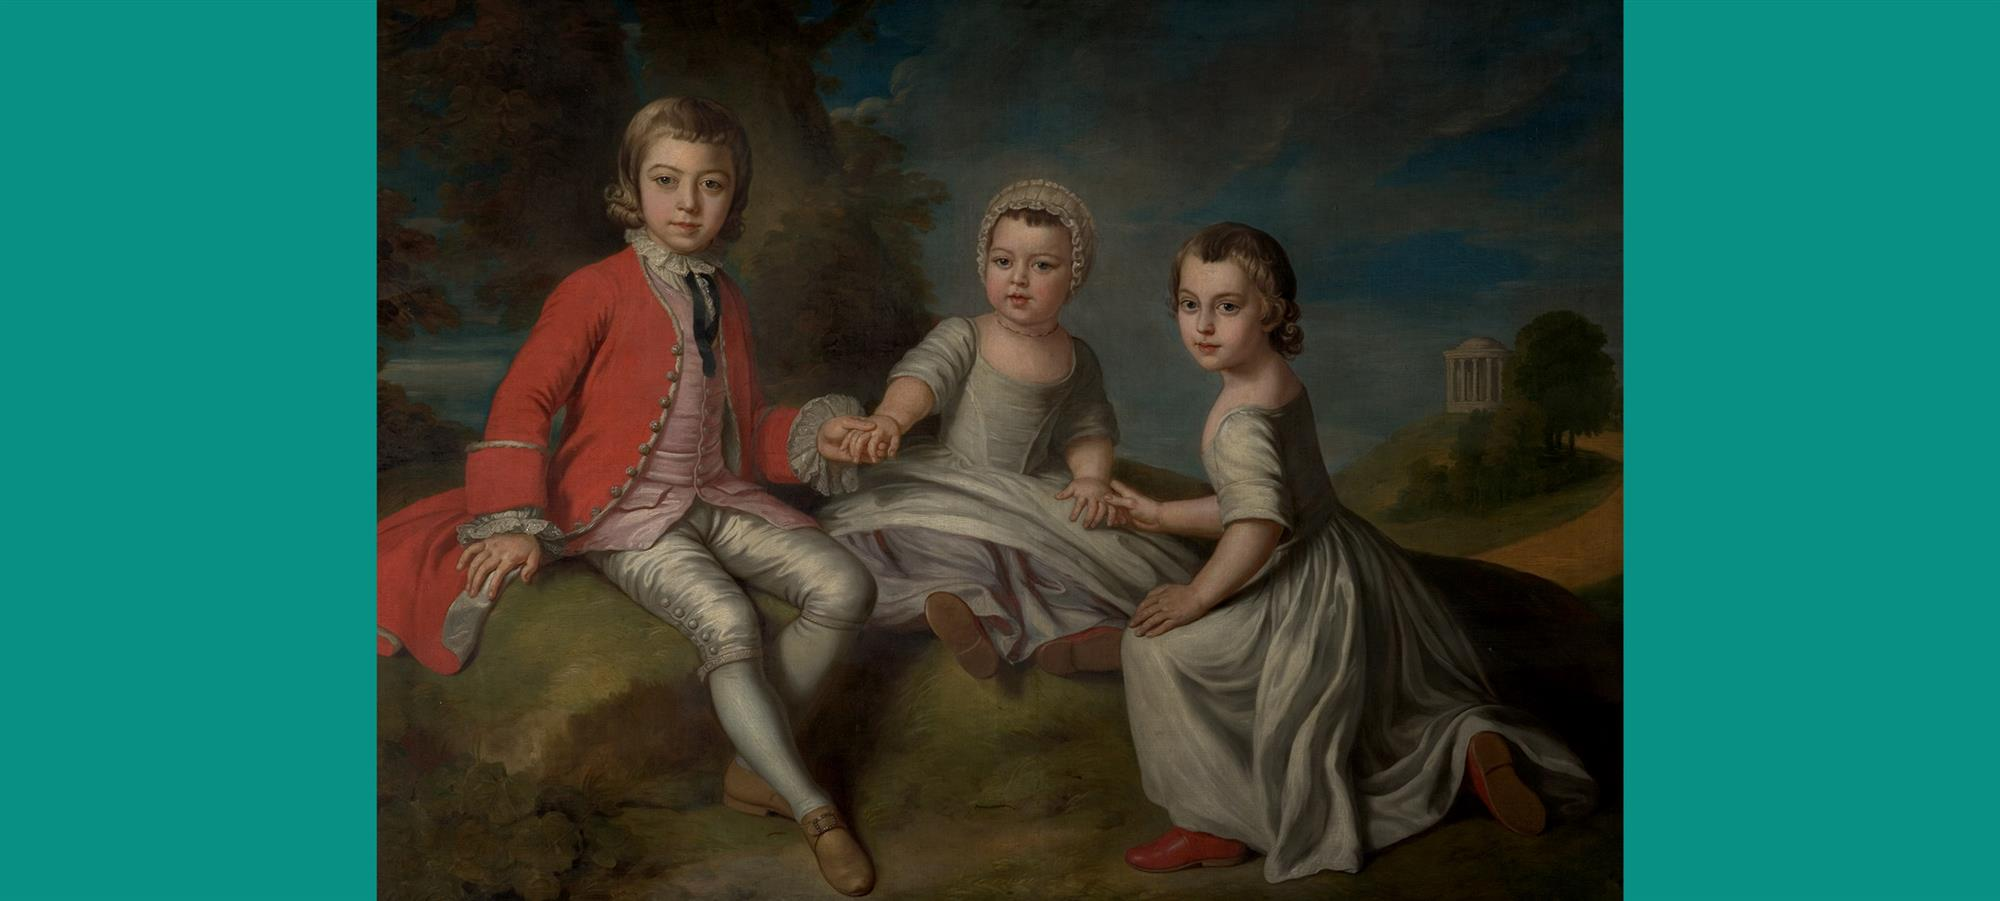 Painting by William Hoare of Bath depicting the Duke of Newcastle's three small children